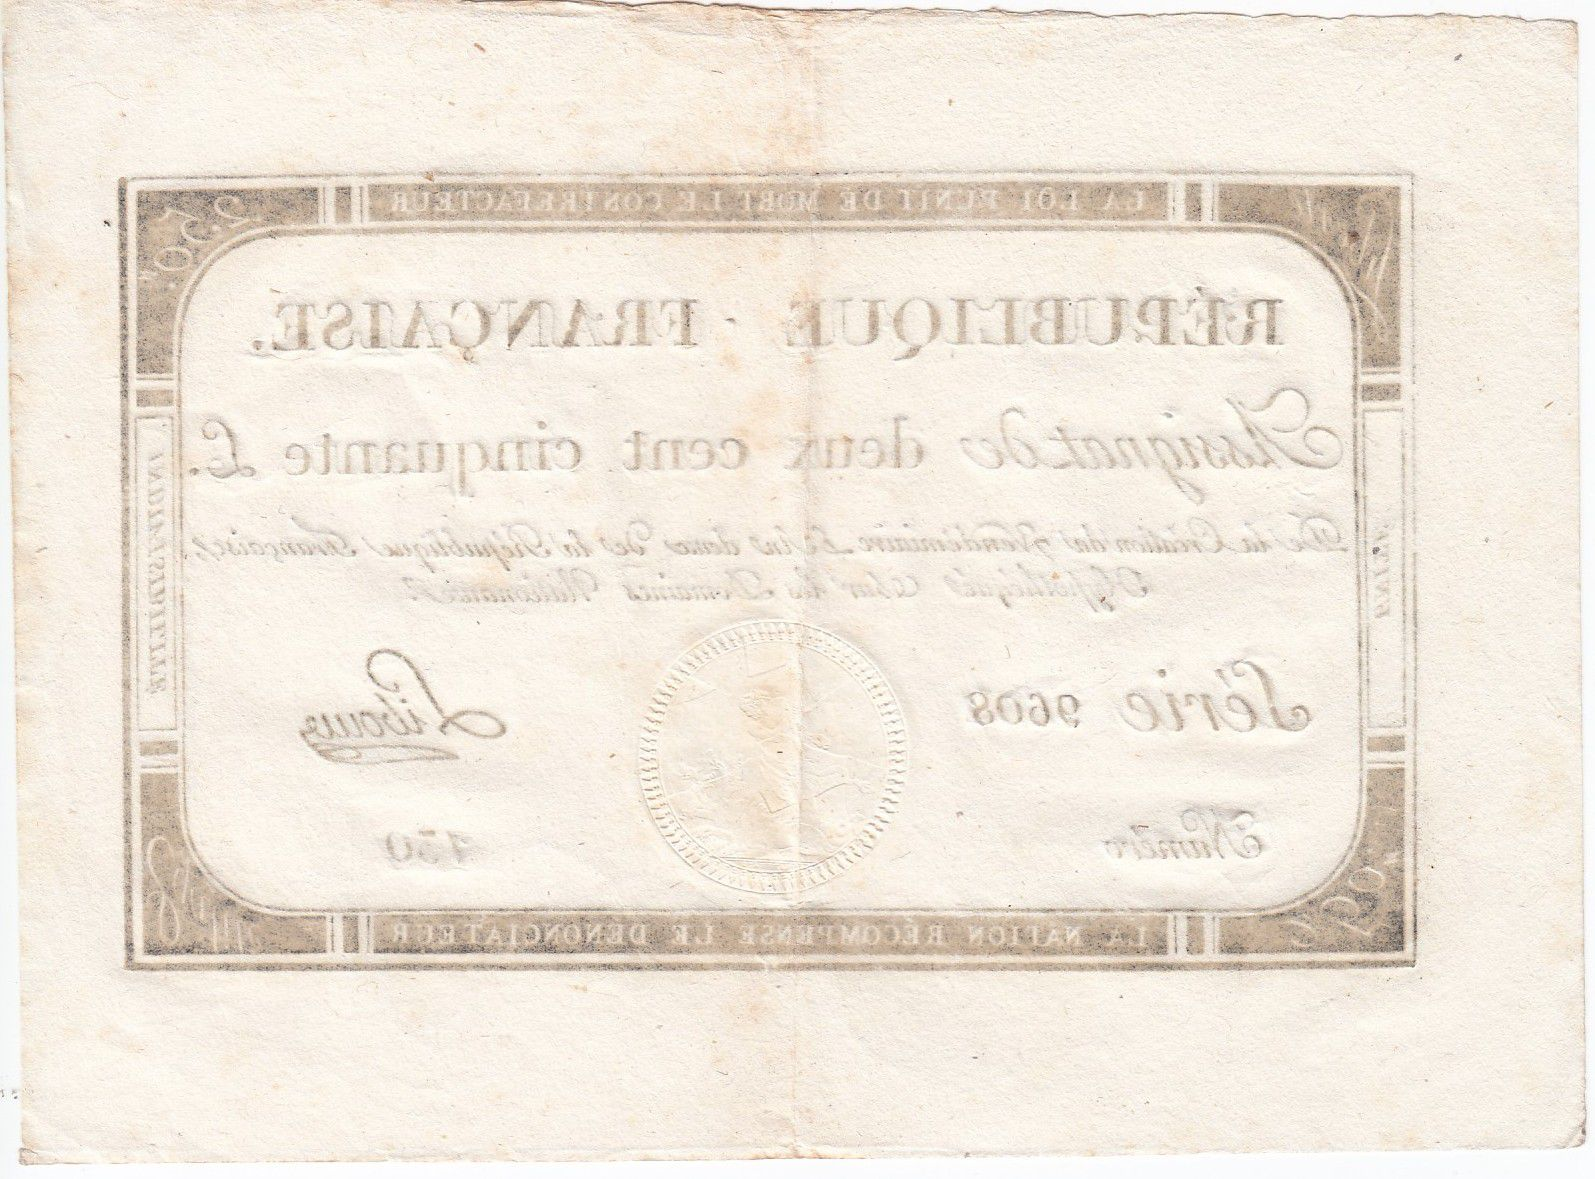 France 250 Livres 7 Vendemiaire An II - 28.9.1793 - Sign.  Libourd - SUP